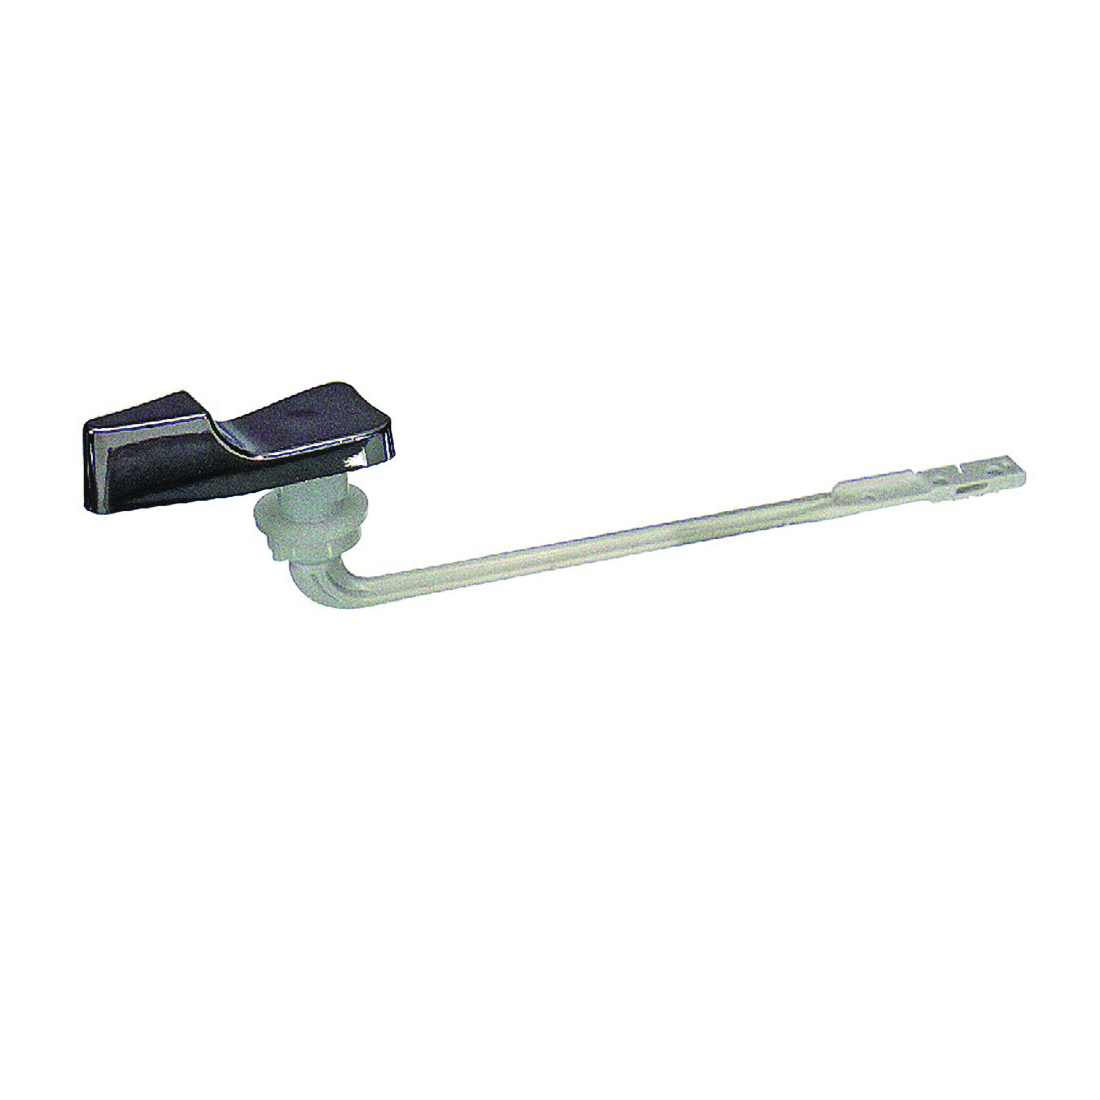 Picture of Danco 80372 Toilet Handle, Metal, For: Most Toilet Tanks